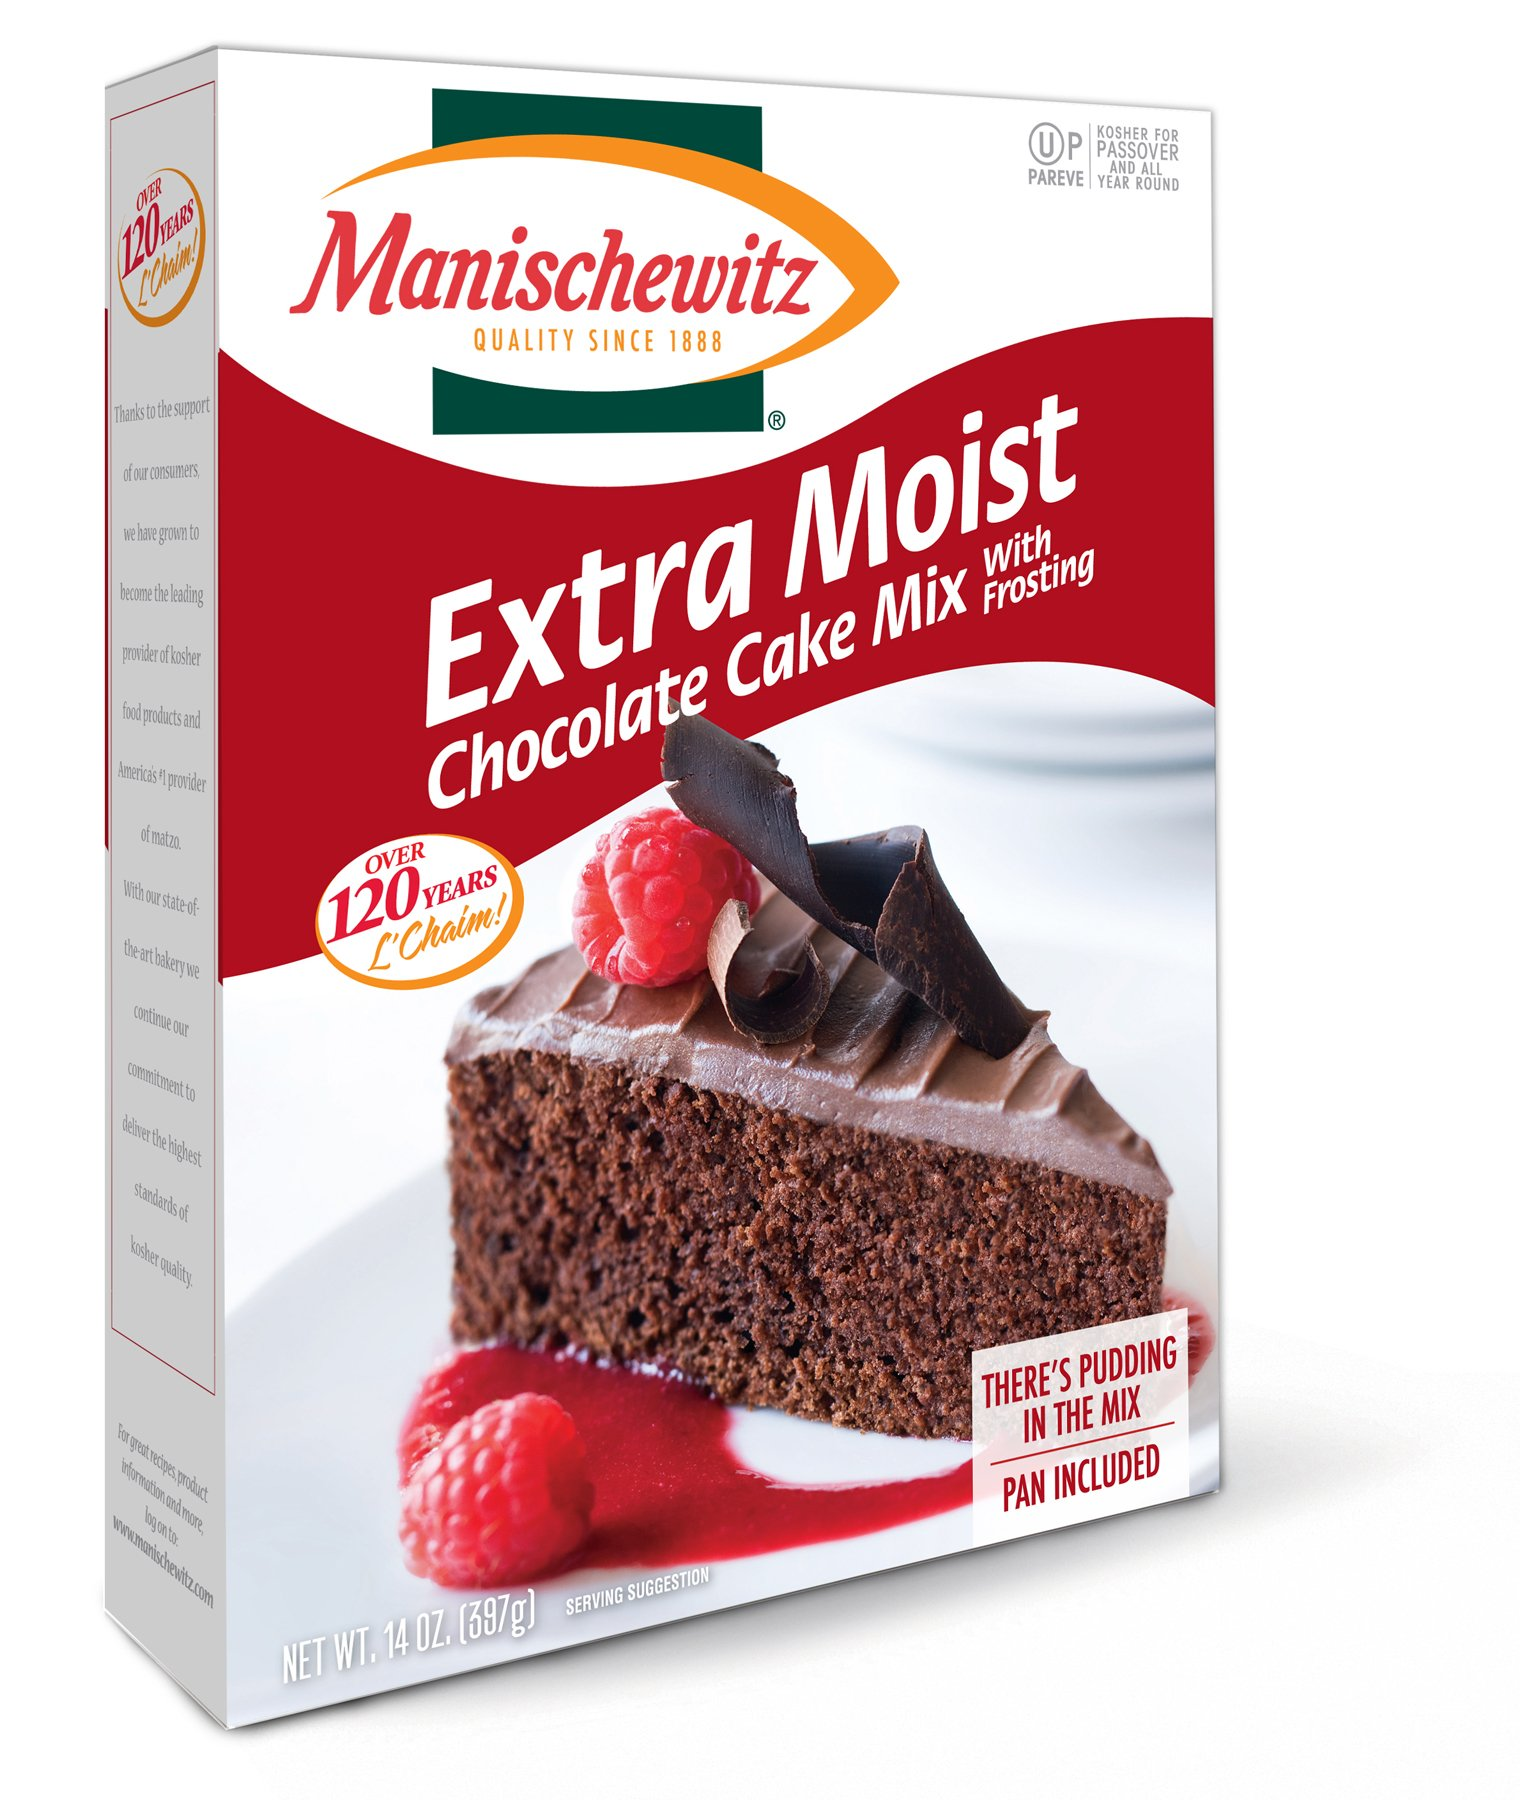 Manischewitz Extra Moist Chocolate Cake Mix With Frosting Kosher For Passover 14 oz. Pack of 1.